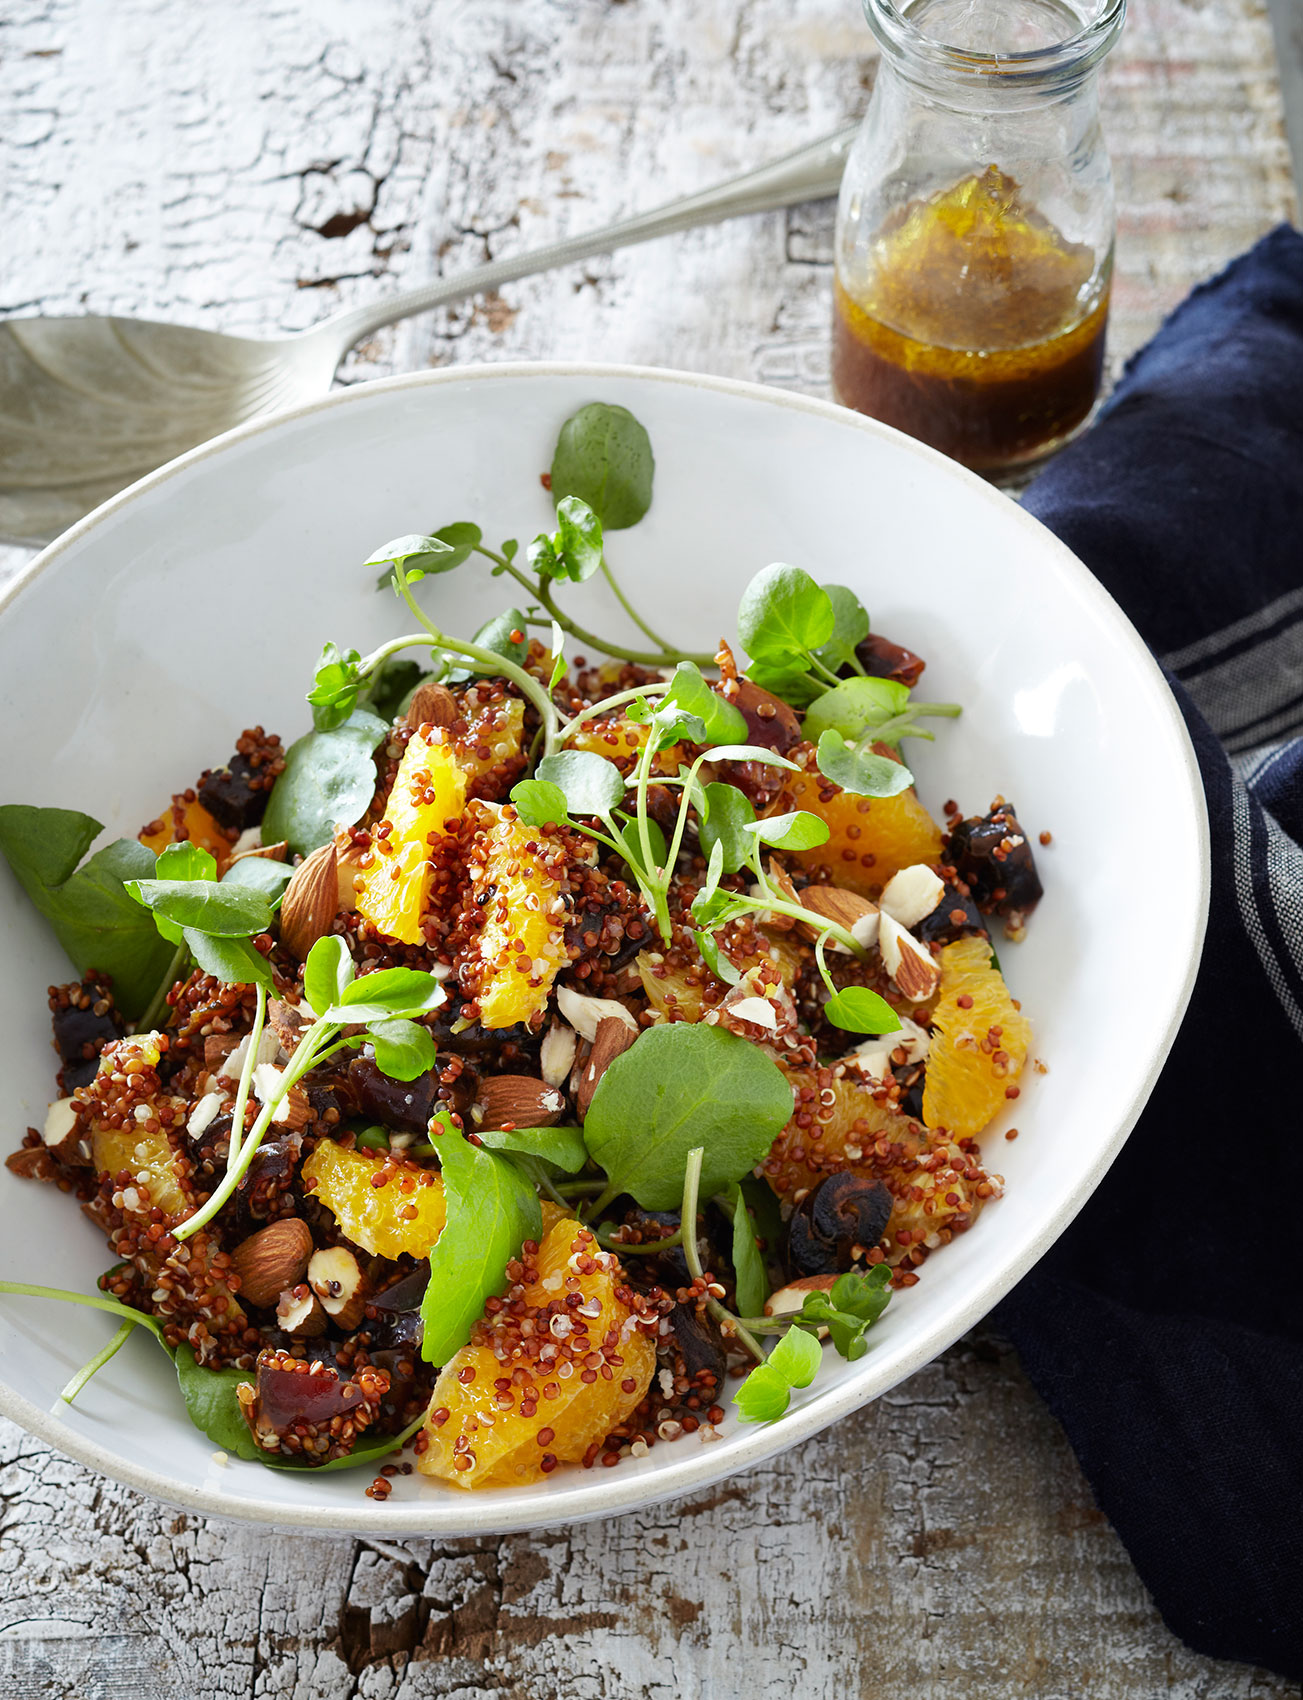 Penguin_Salads_Grains_RedQuinoa